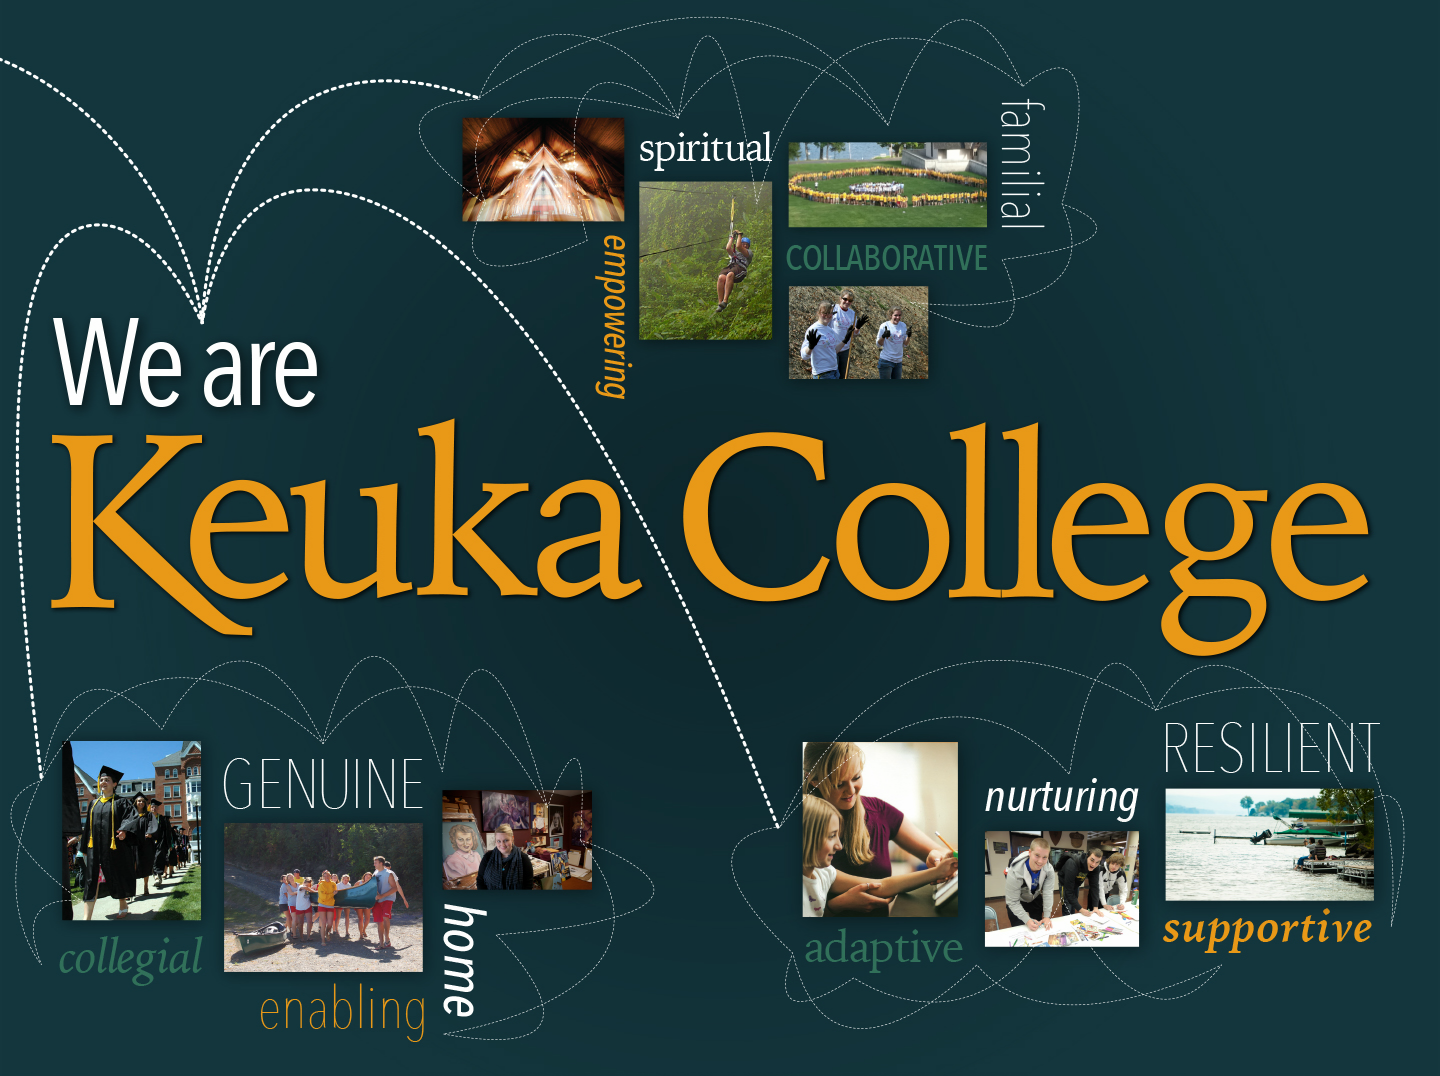 A screenshot from a recent brand orientation presentation given at Keuka College.